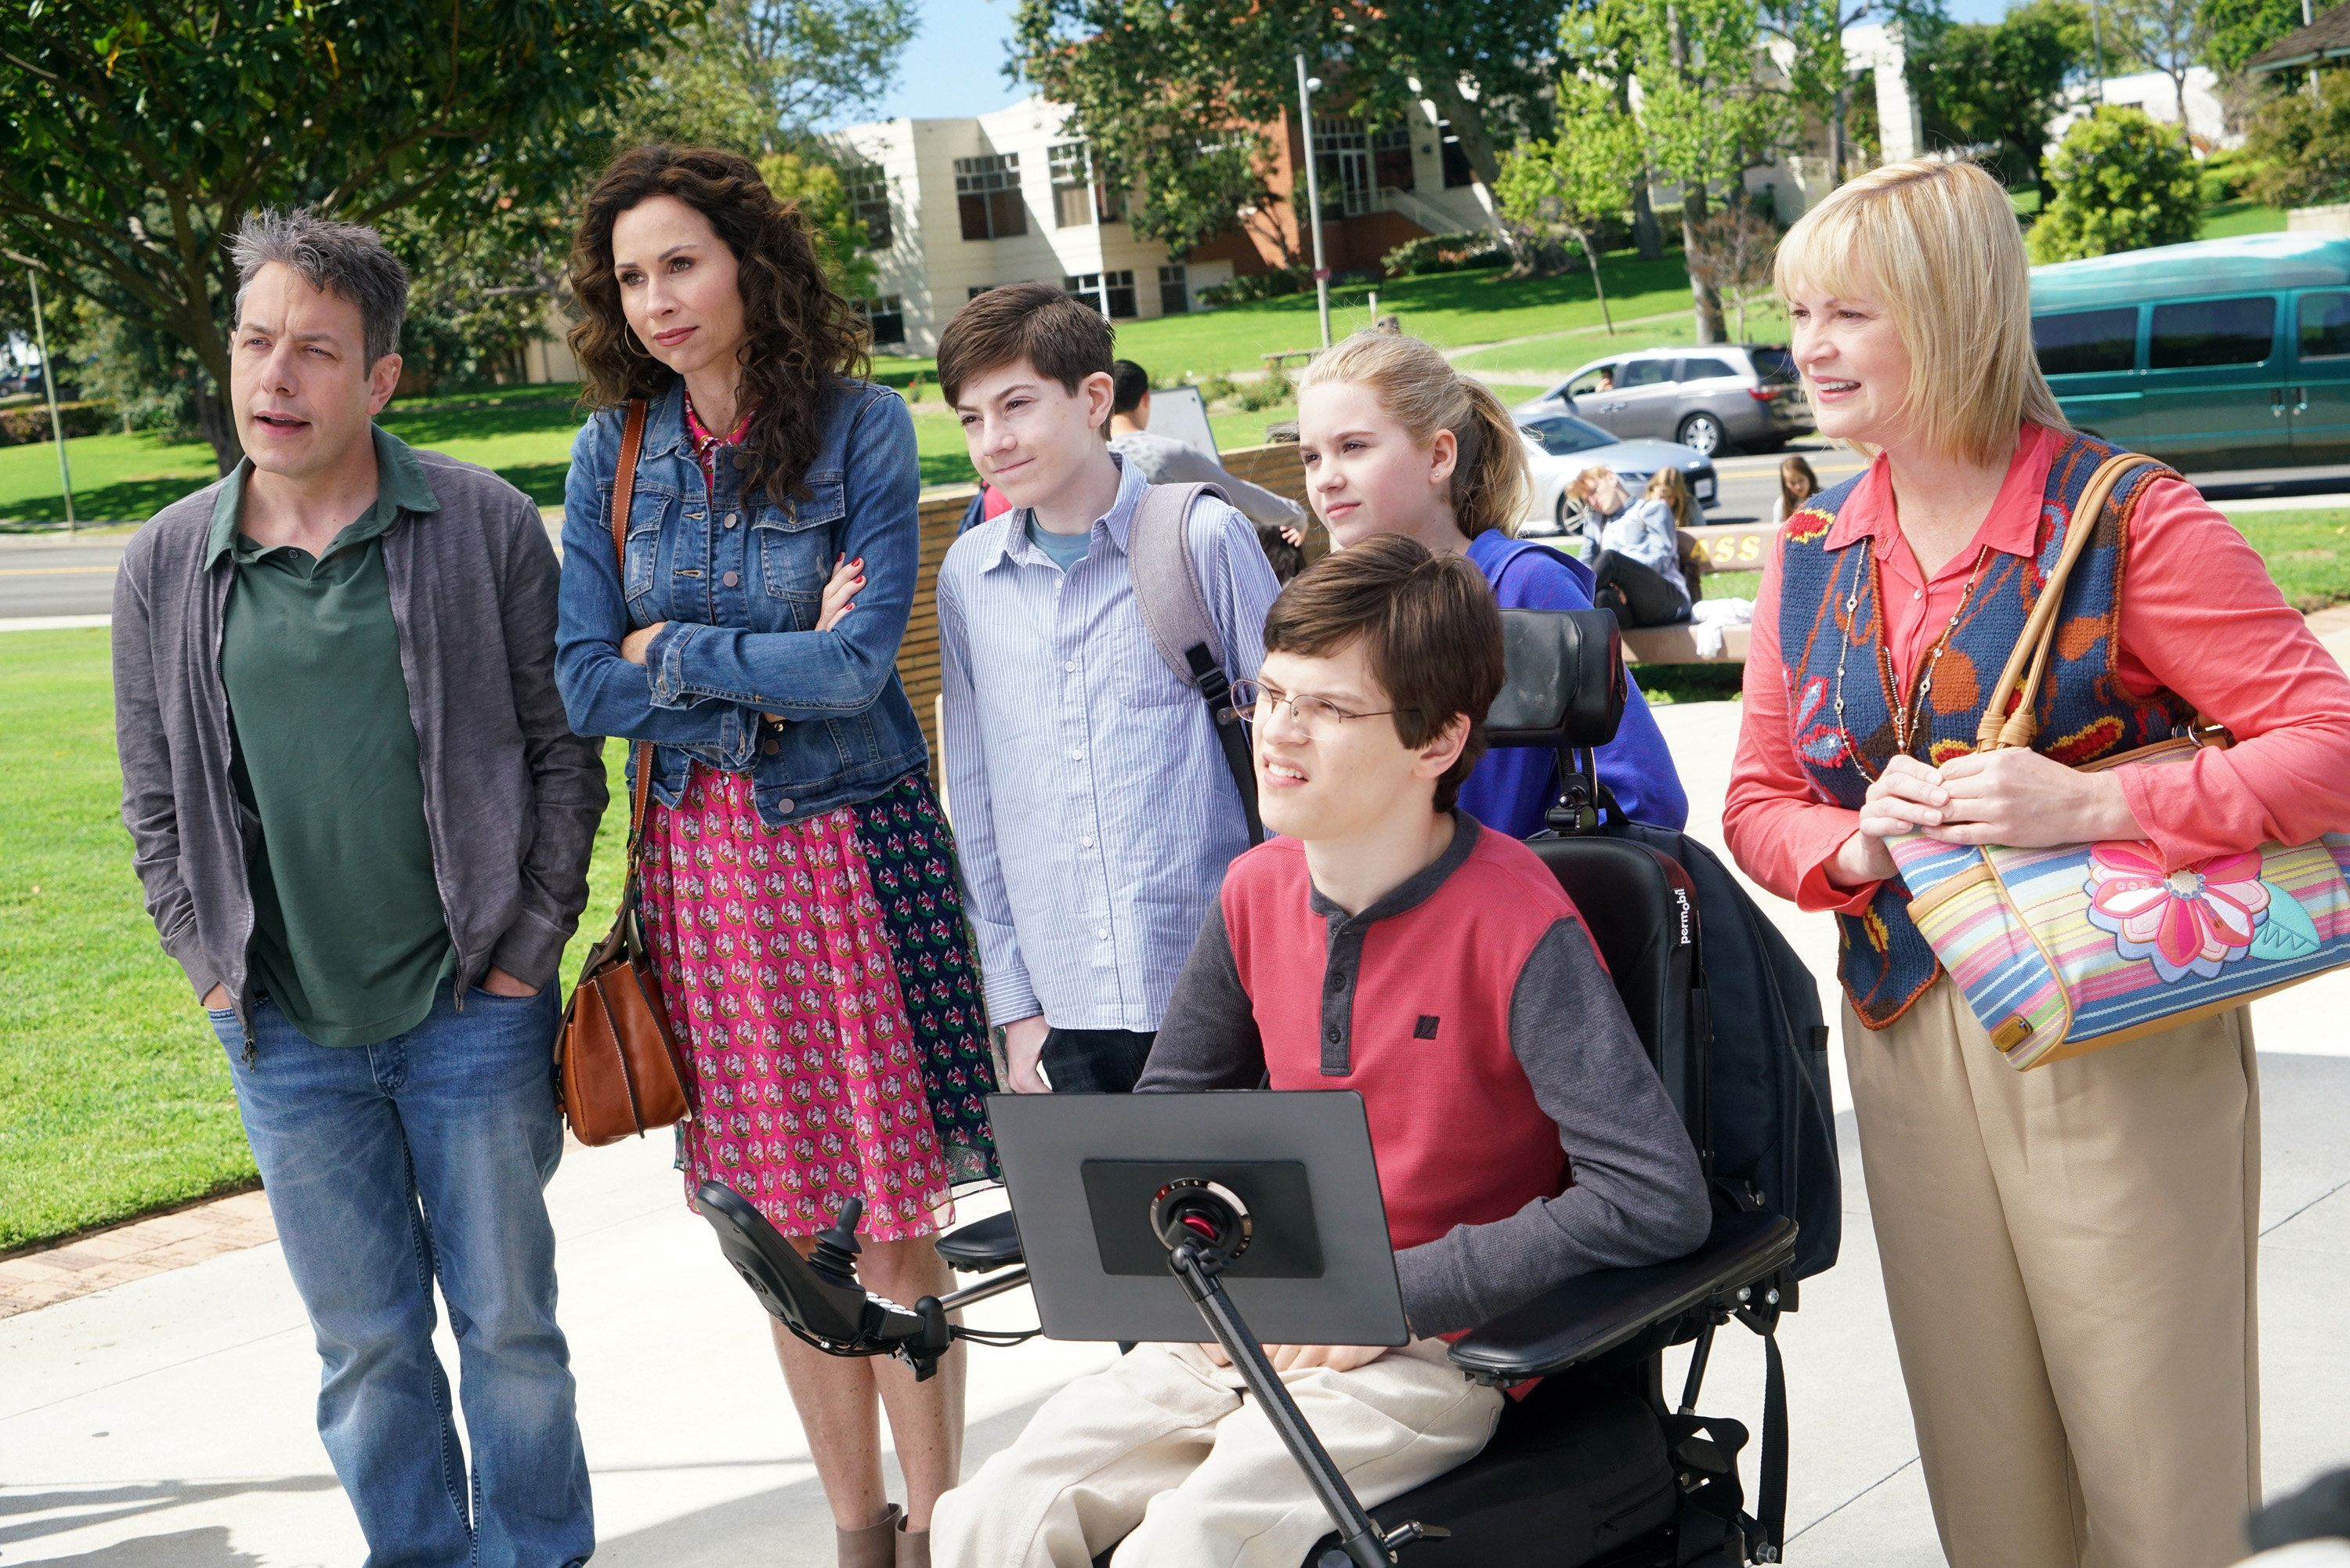 SPEECHLESS- 'Pilot' - Maya DiMeo moves her family to a new, upscale school district when she finds the perfect situation for her eldest son, JJ, who has cerebral palsy. While JJ and daughter Dylan are thrilled with the move, middle son Ray is frustrated by the family's tendencies to constantly move, since he feels his needs are second to JJ Soon, Maya realizes it is not the right situation for JJ and attempts to uproot the family again. But JJ connects with Kenneth, the school's groundskeeper, and asks him to step in as a his caregiver, and Ray manages to convince Maya to give the school another chance, on the series premiere 'Speechless' WEDNESDAY, SEPTEMBER 21 (8:30-9:00 p.m. EDT), on the ABC Television Network. (Adam Taylor/ABC via Getty Images) JOHN ROSS BOWIE, MINNIE DRIVER, MASON COOK, KYLA KENEDY, MICAH FOWLER, DINA SPYBEY-WATERS